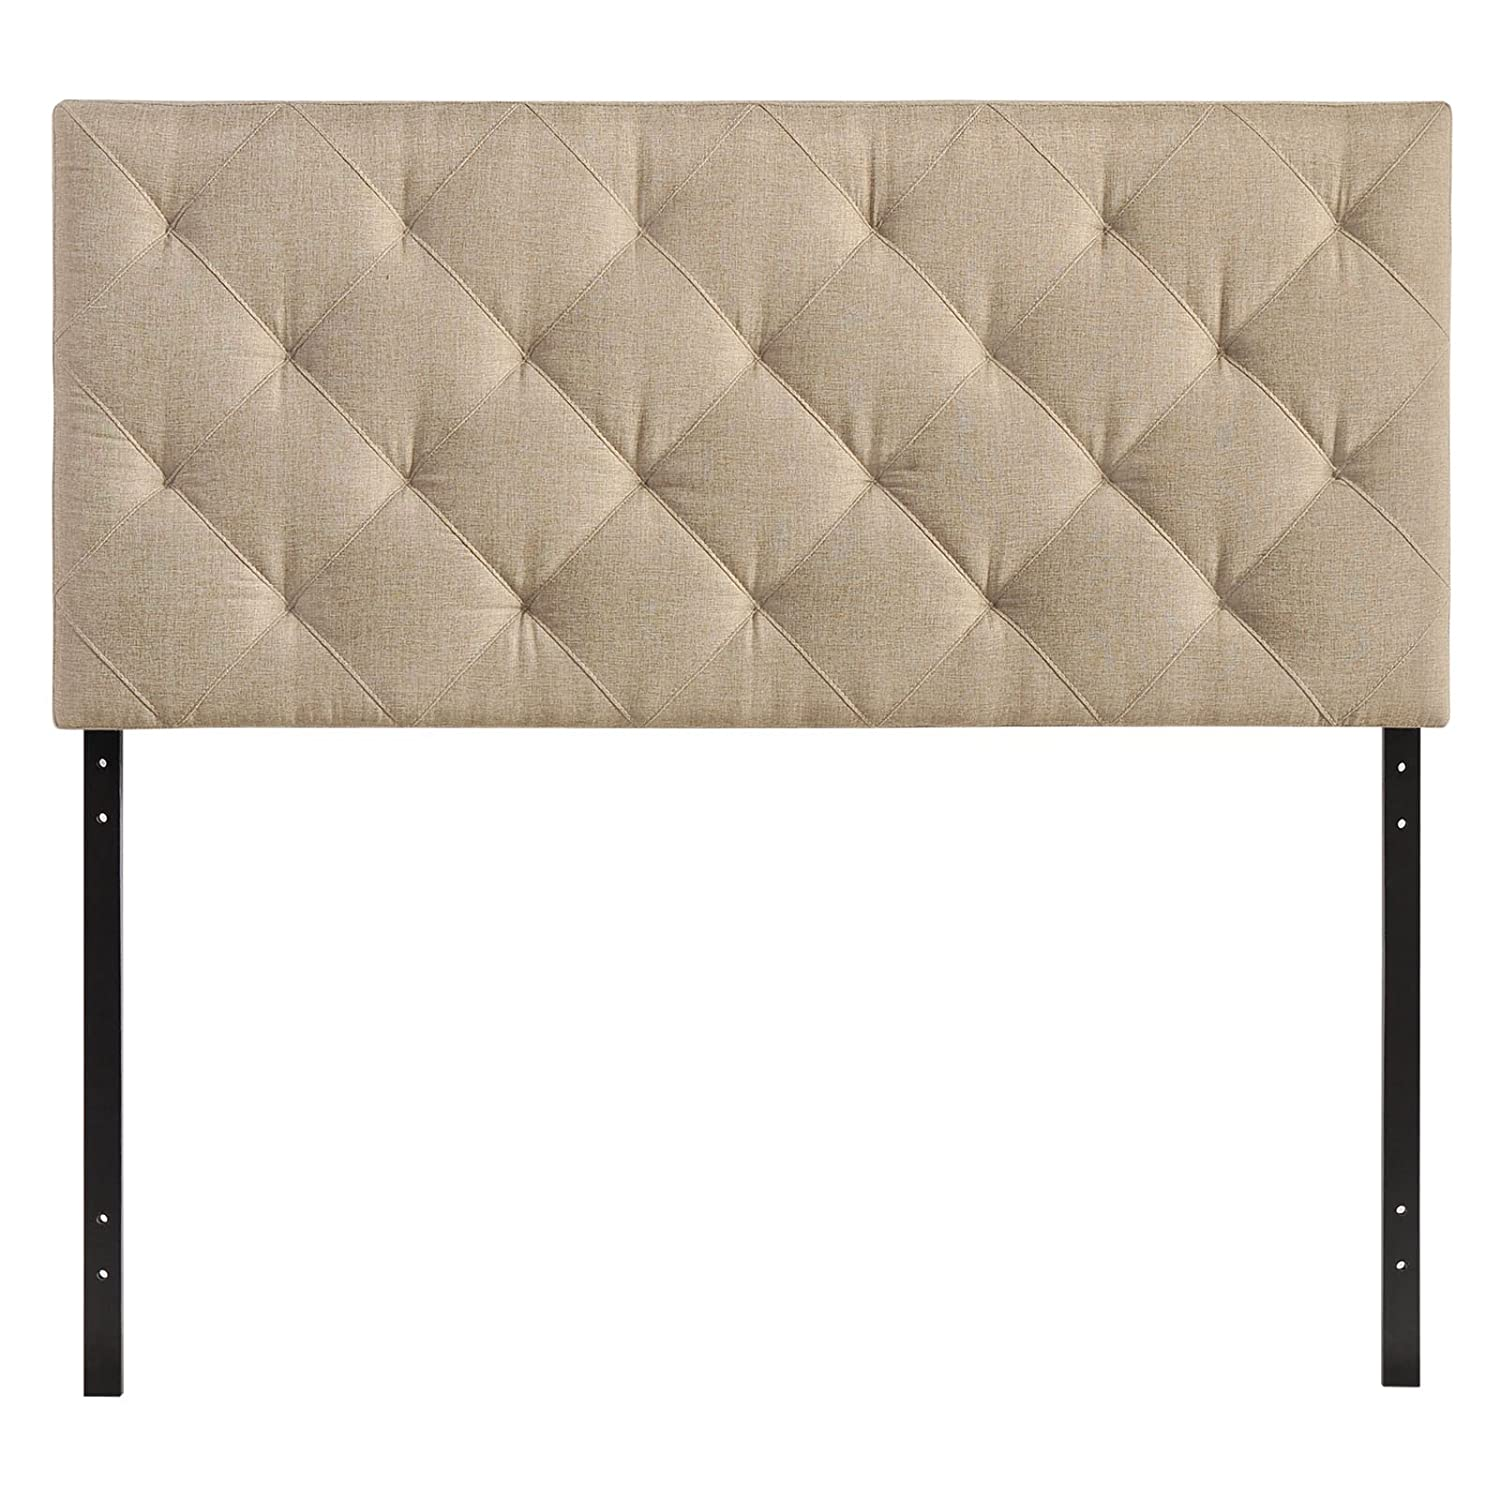 Amazoncom  Modway Theodore Upholstered Fabric Tufted Headboard In Beige,